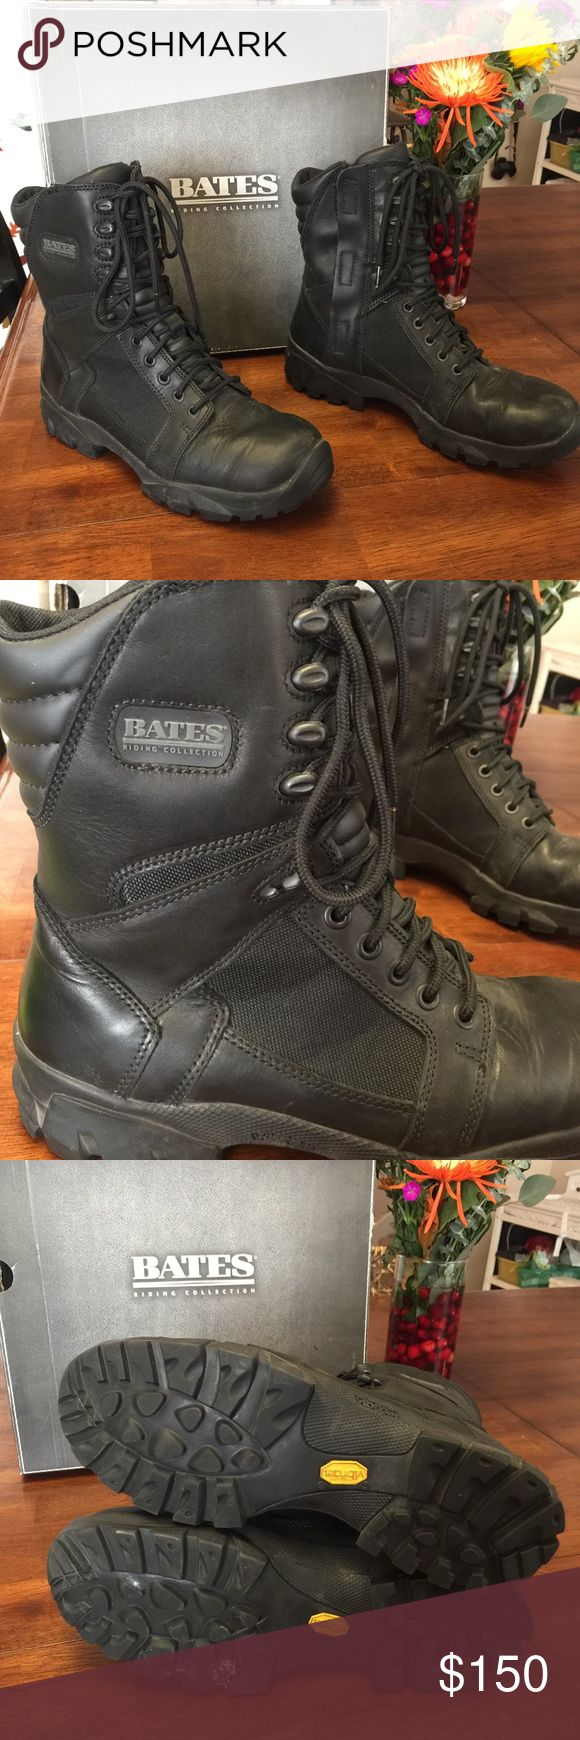 Men's Escalante Waterproof motorcycle boots Bates Men's Escalante Waterproof motorcycle riding boots Bates size 10, very gently used, no excessive wear. Bates Shoes Boots